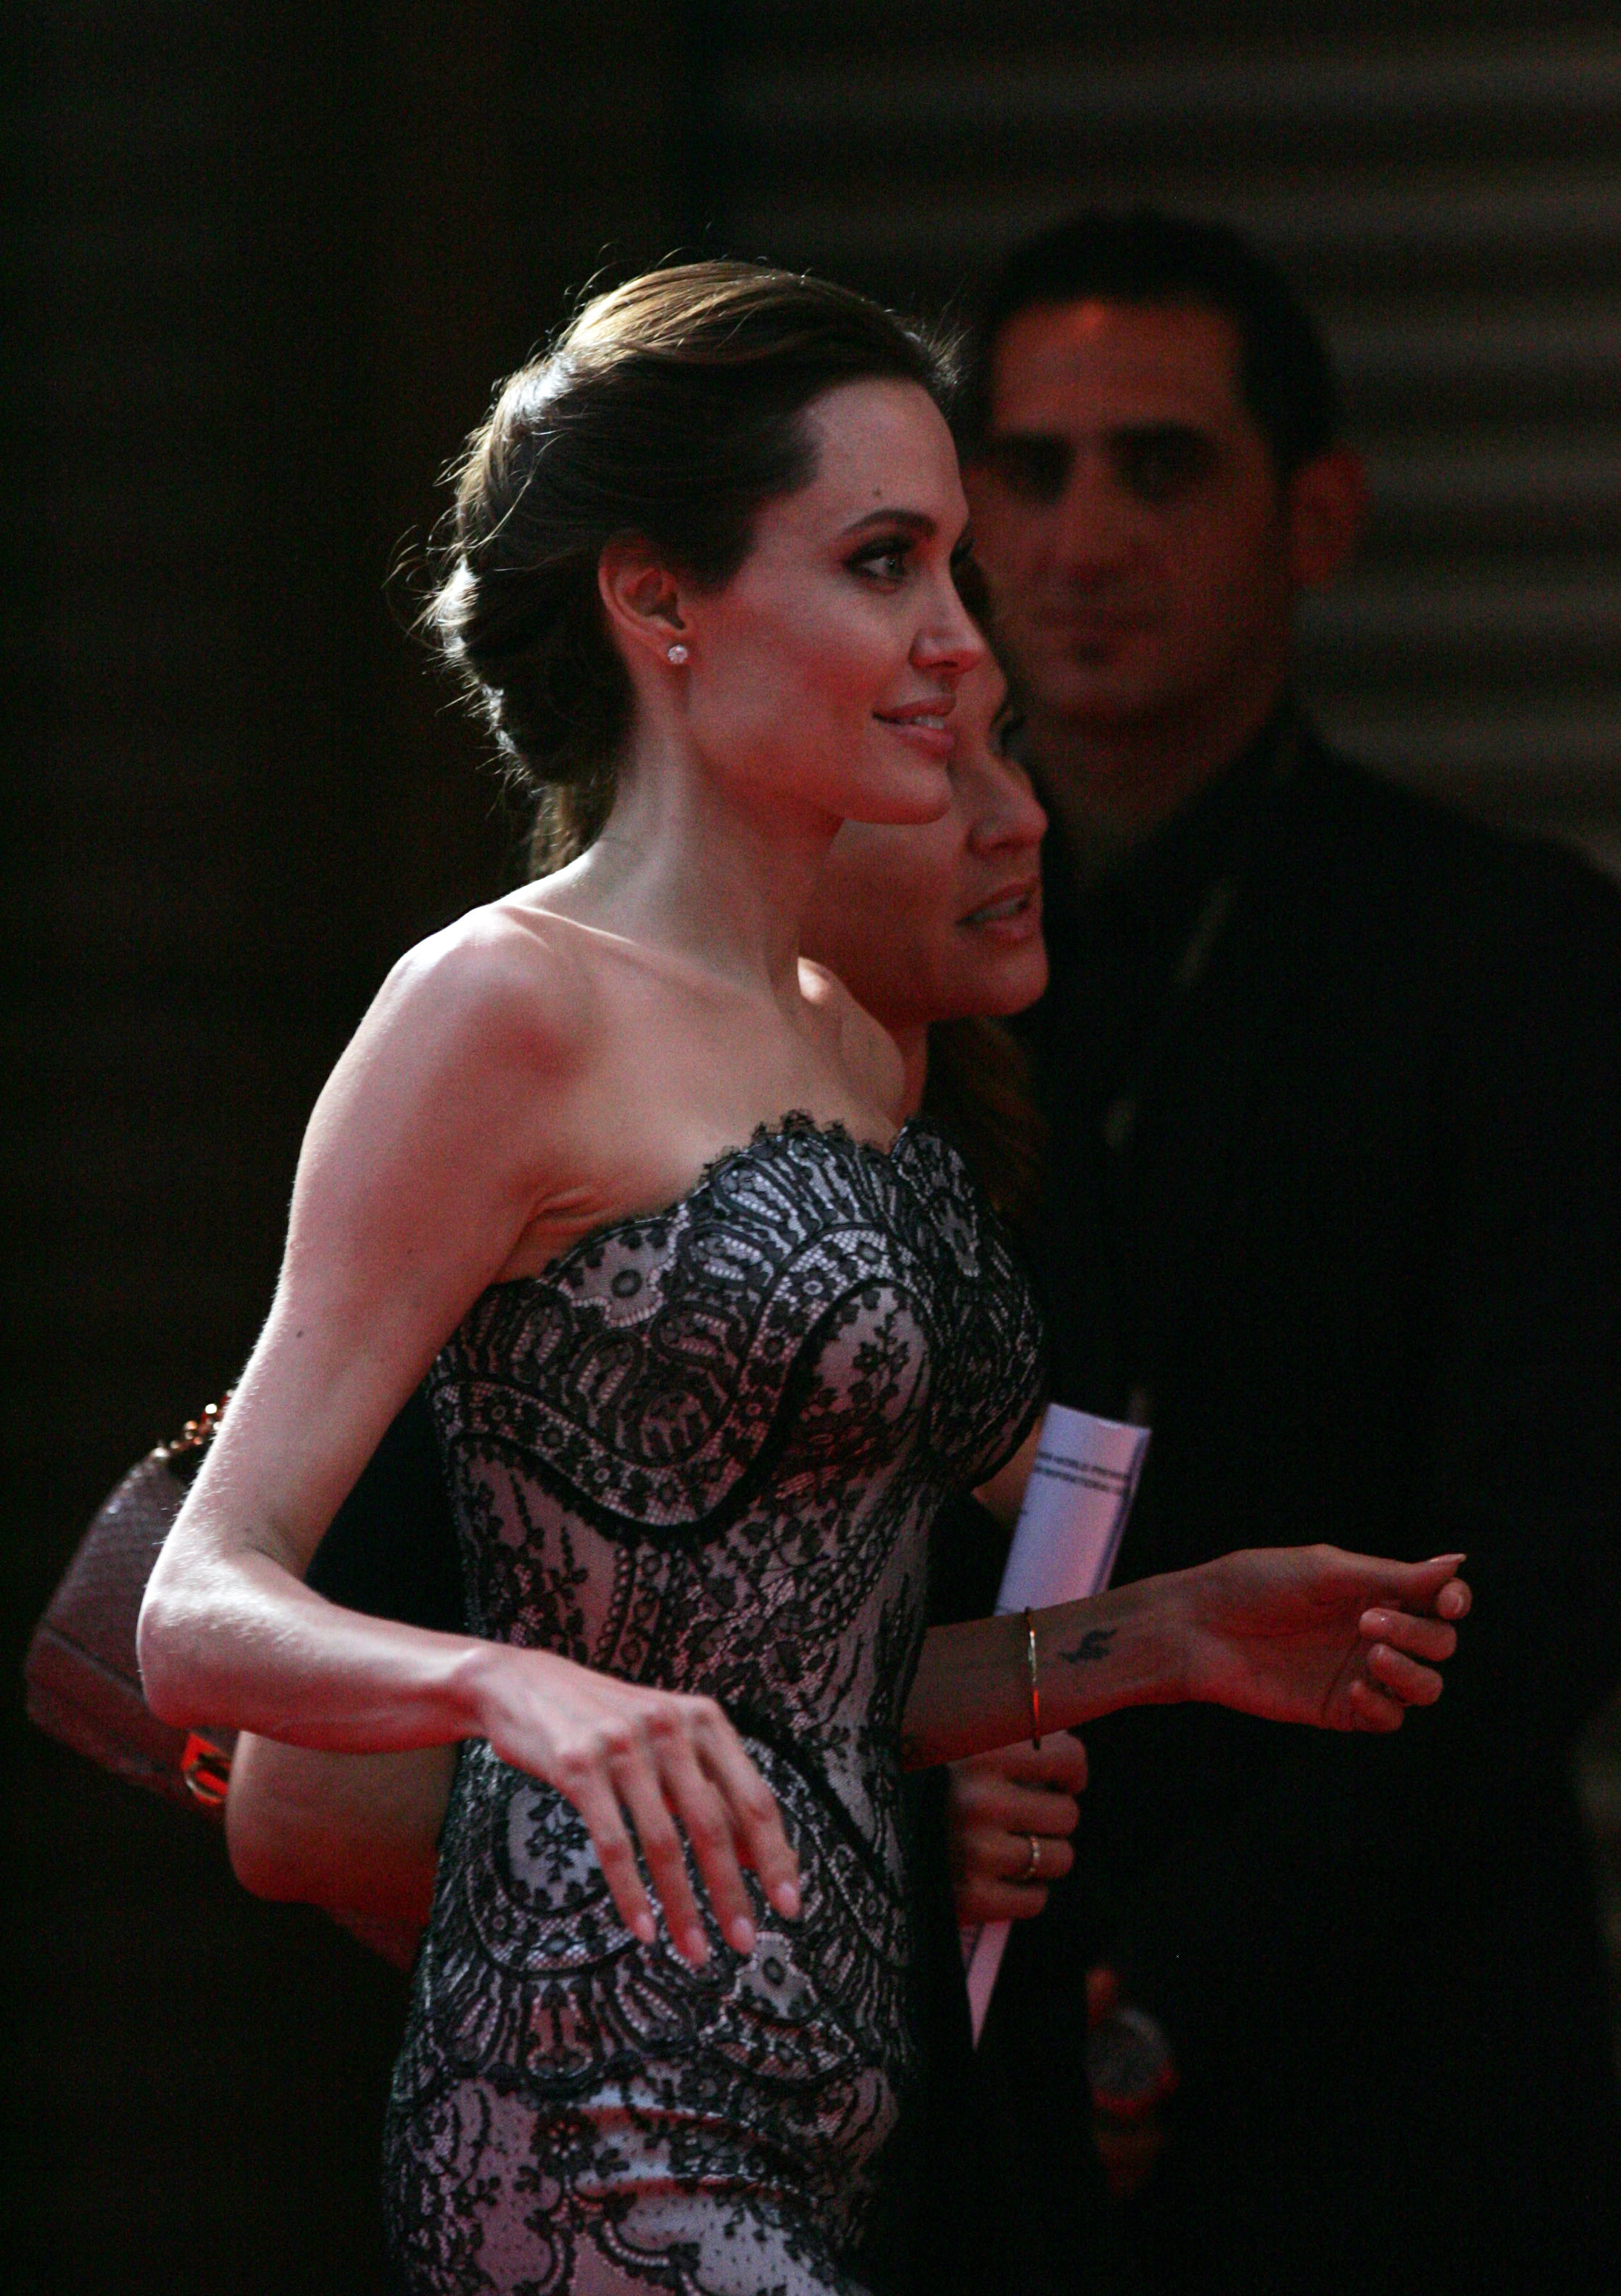 Jolie at the premiere of Unbroken in 2014